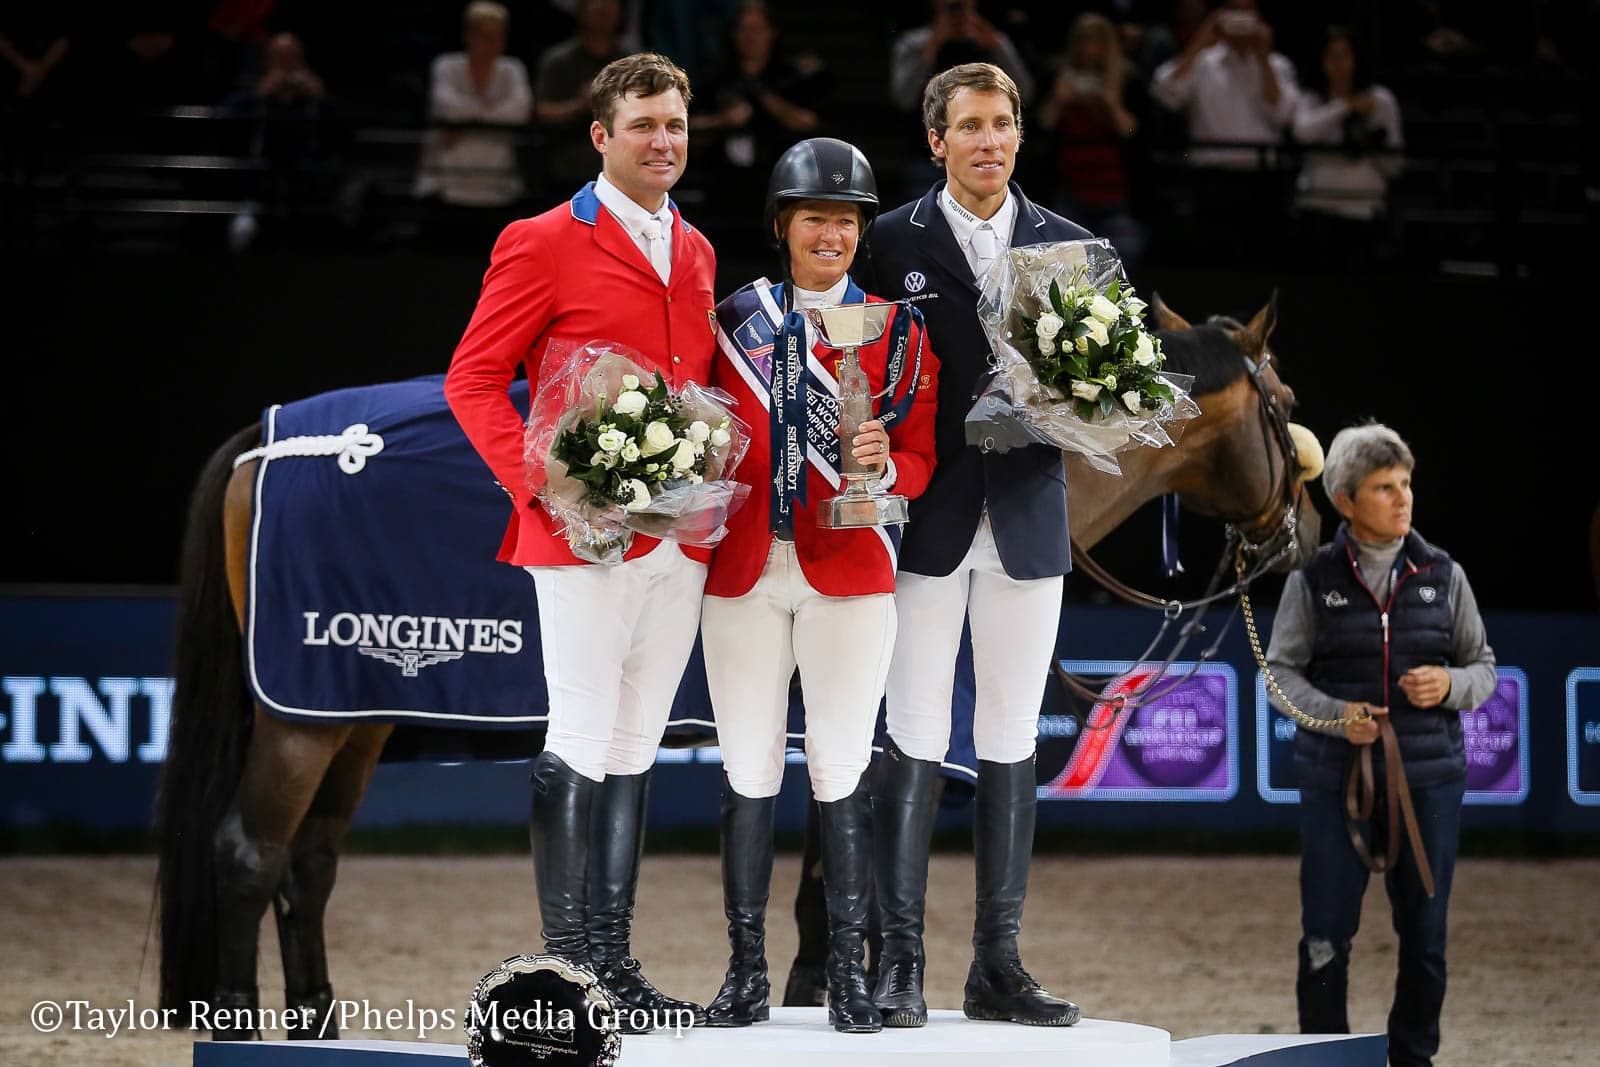 Devin Ryan (left), Beezie Madden (center) and Henrik von Eckermann (right)